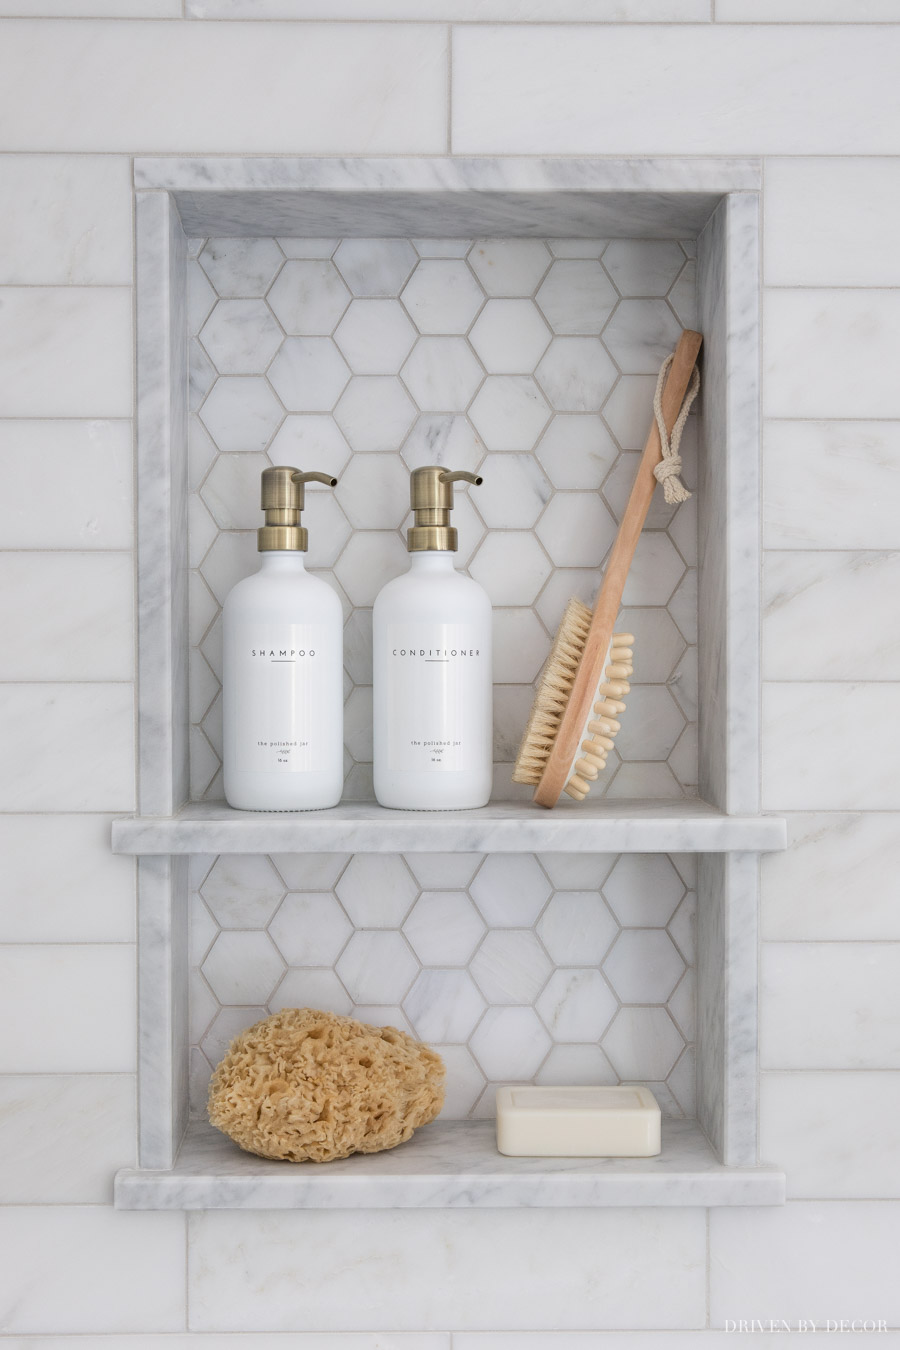 Love the pop of brass with the shampoo pump tops with the satin nickel shower hardware!